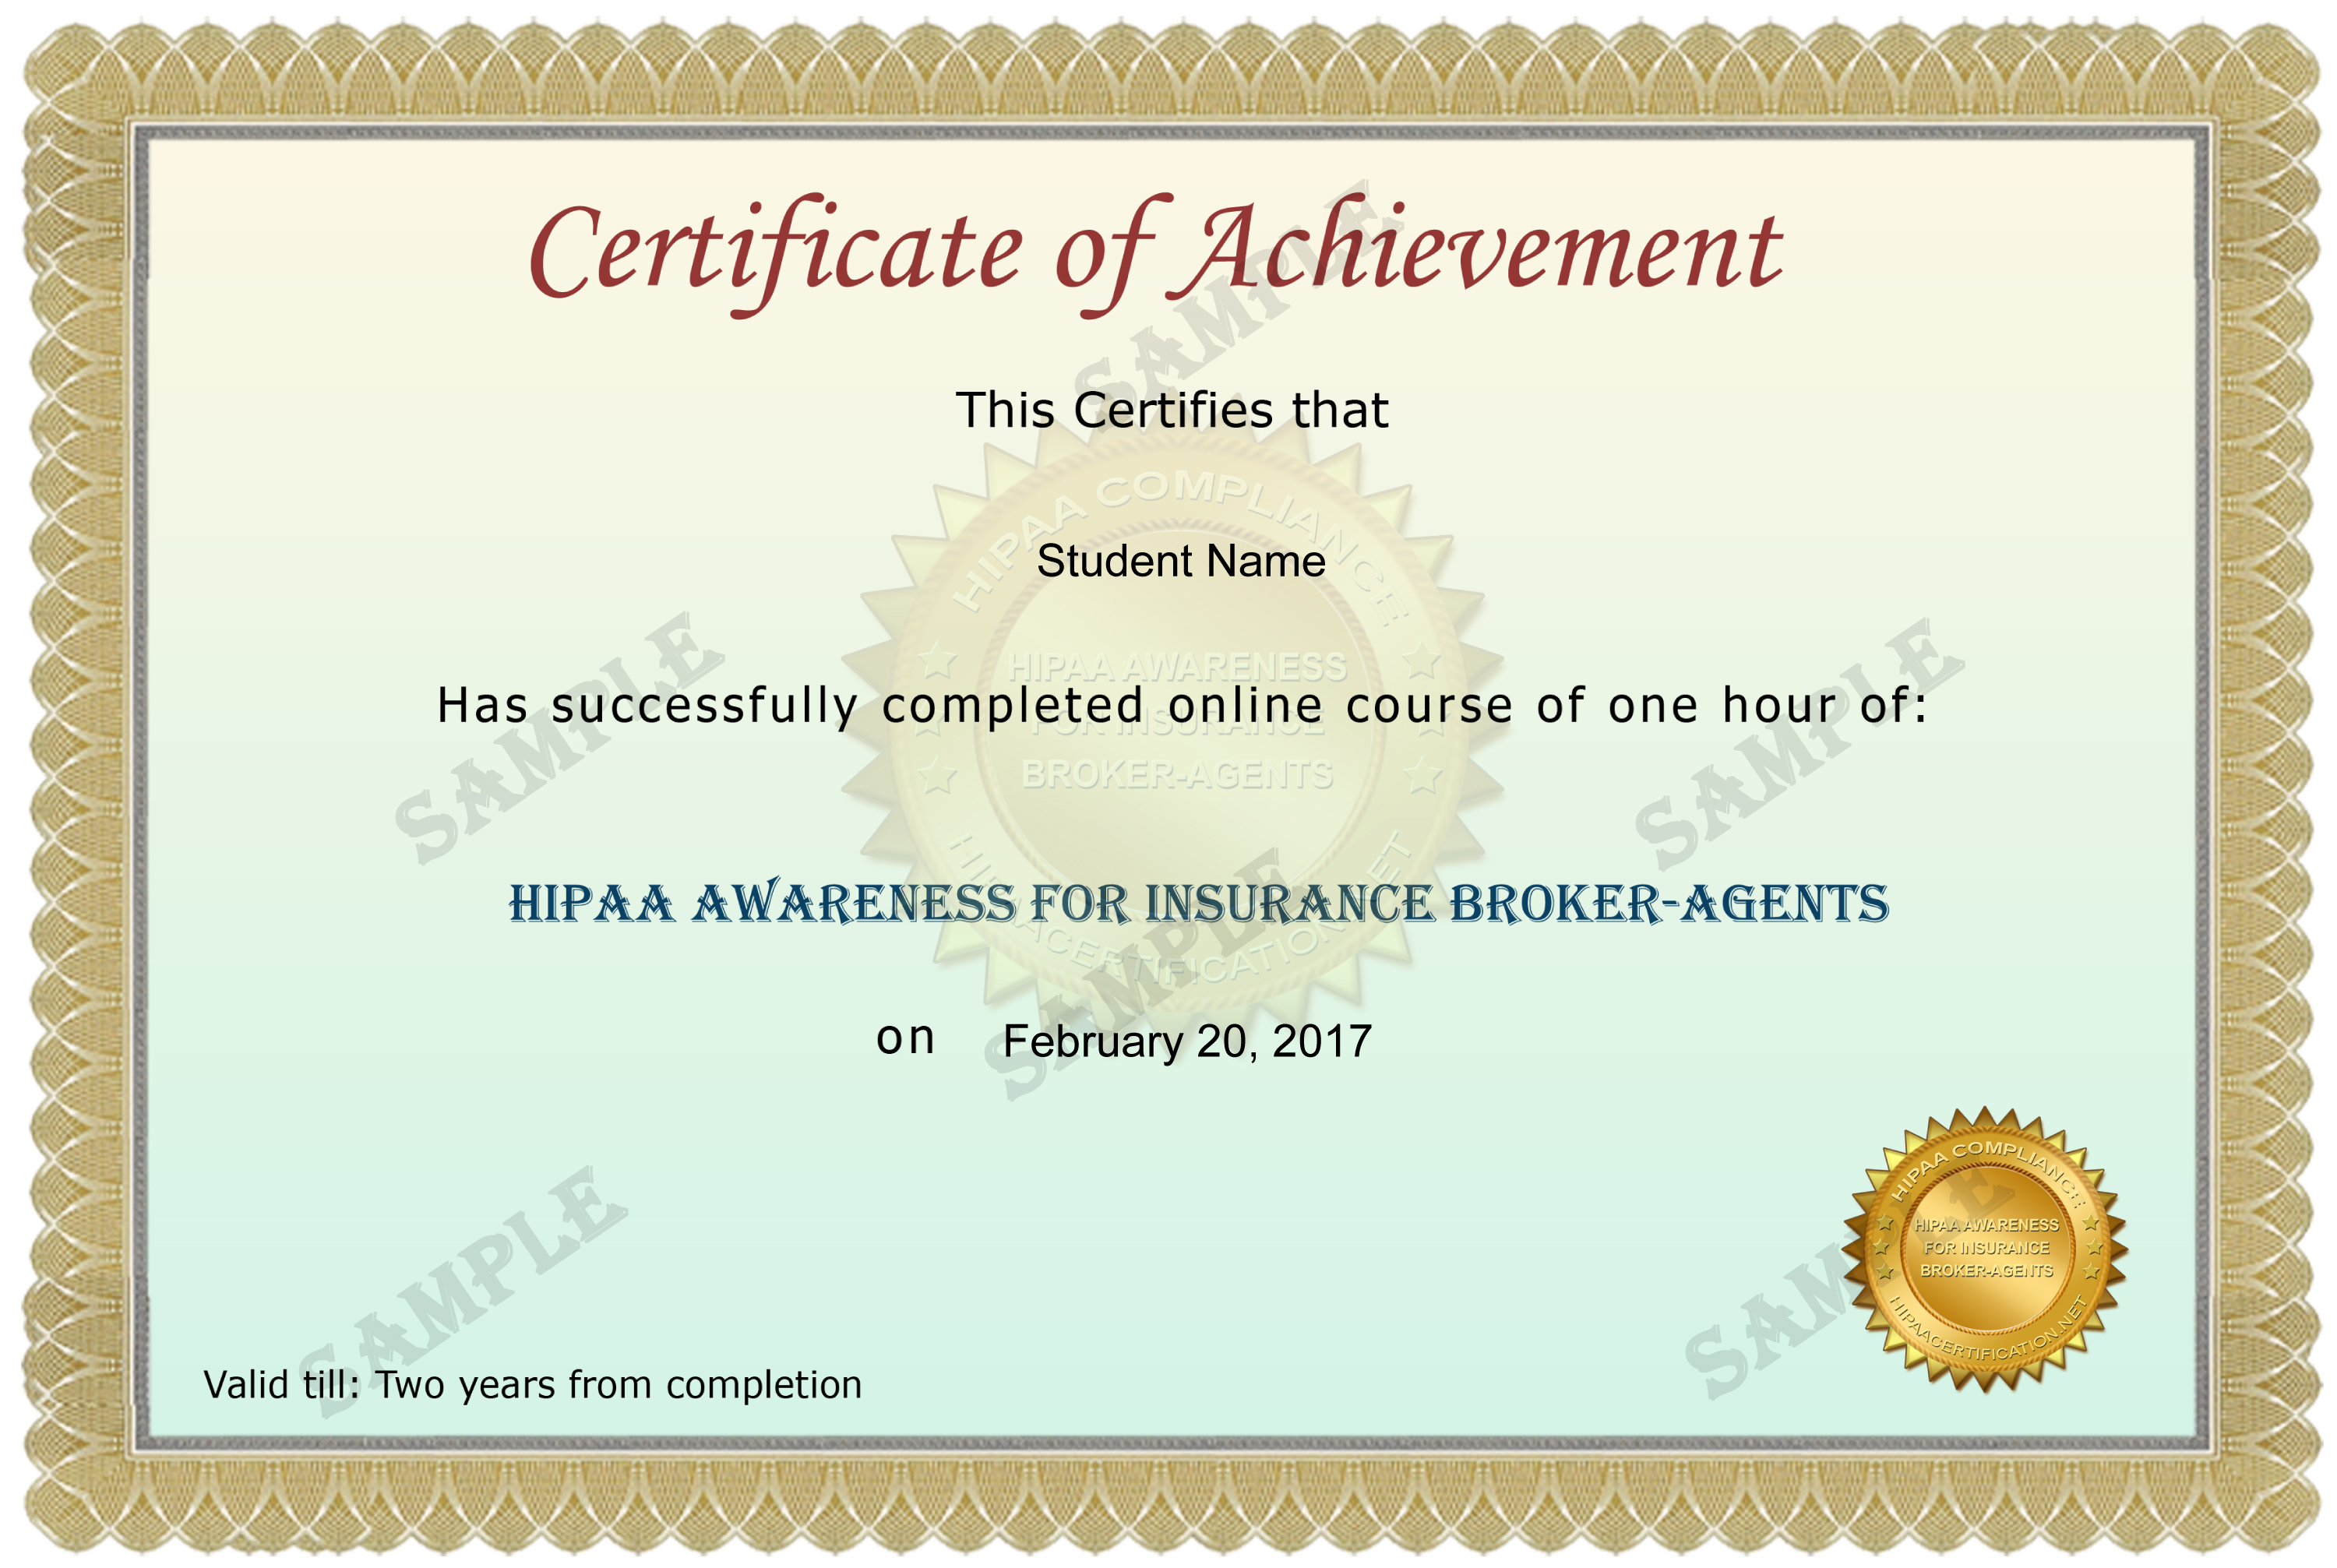 Insurance Broker-Agents Certificate Sample